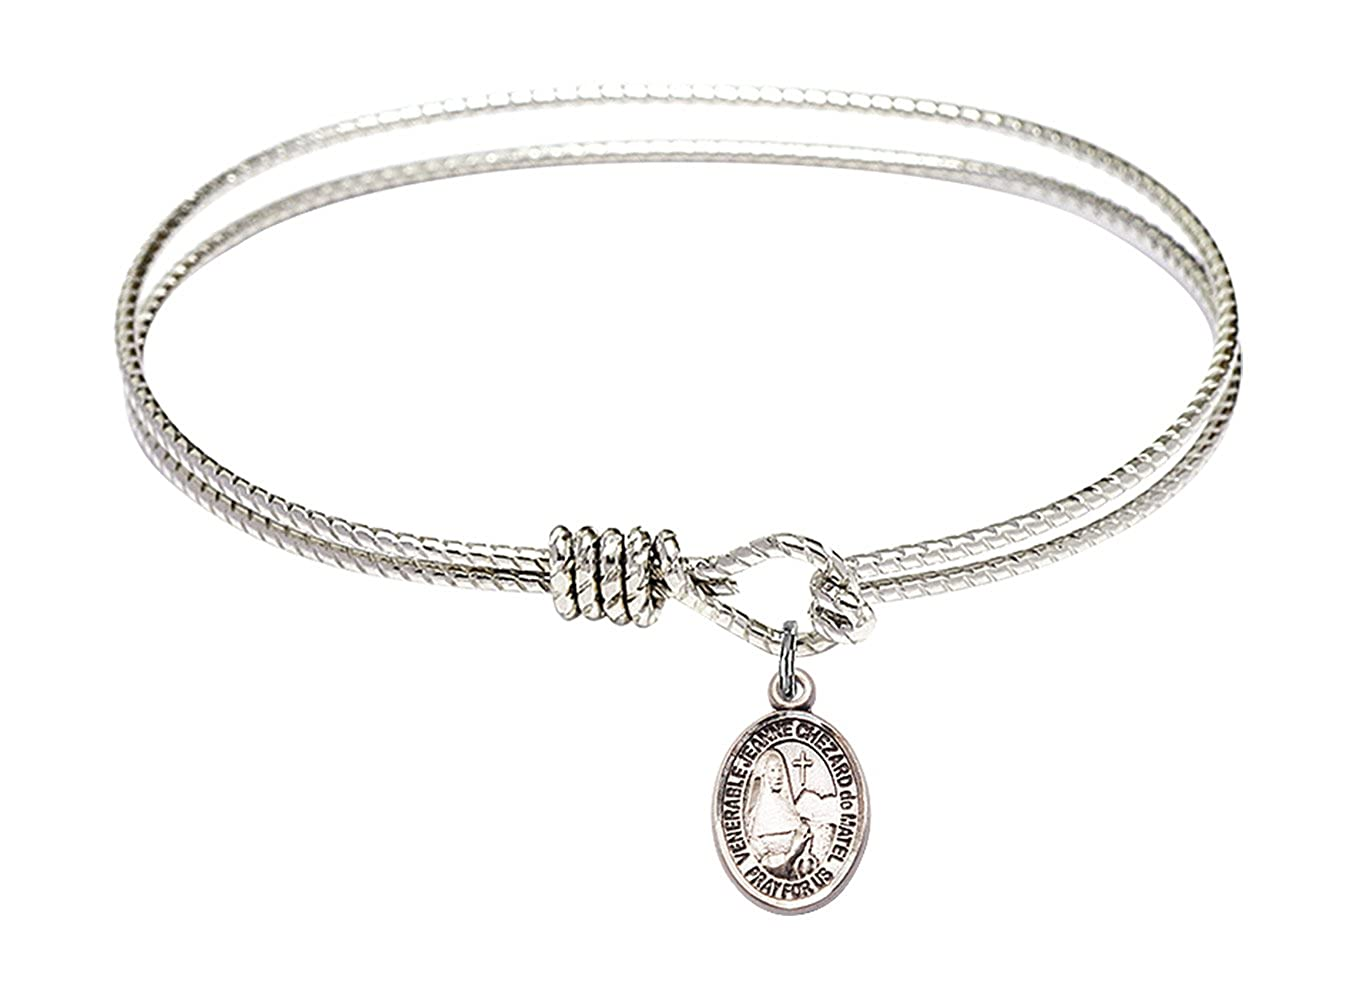 F A Dumont 7 1//4 inch Oval Eye Hook Bangle Bracelet with a St Jeanne Chezard de Matel Charm.